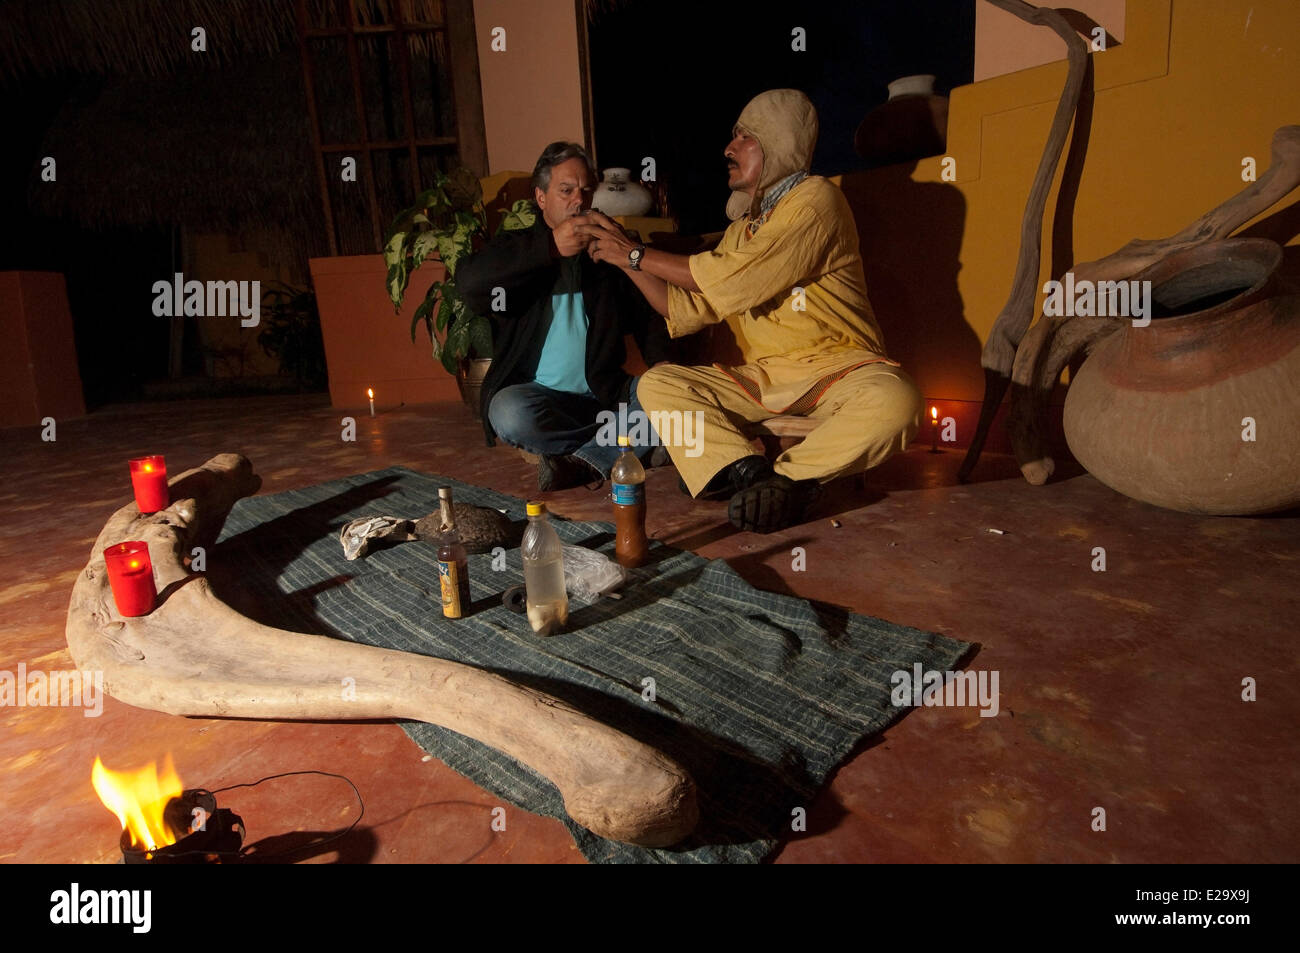 Peru, San Martin province, Lamas, capital of the indigenous people quechua lamistaAyawaska ceremony, a plant with - Stock Image